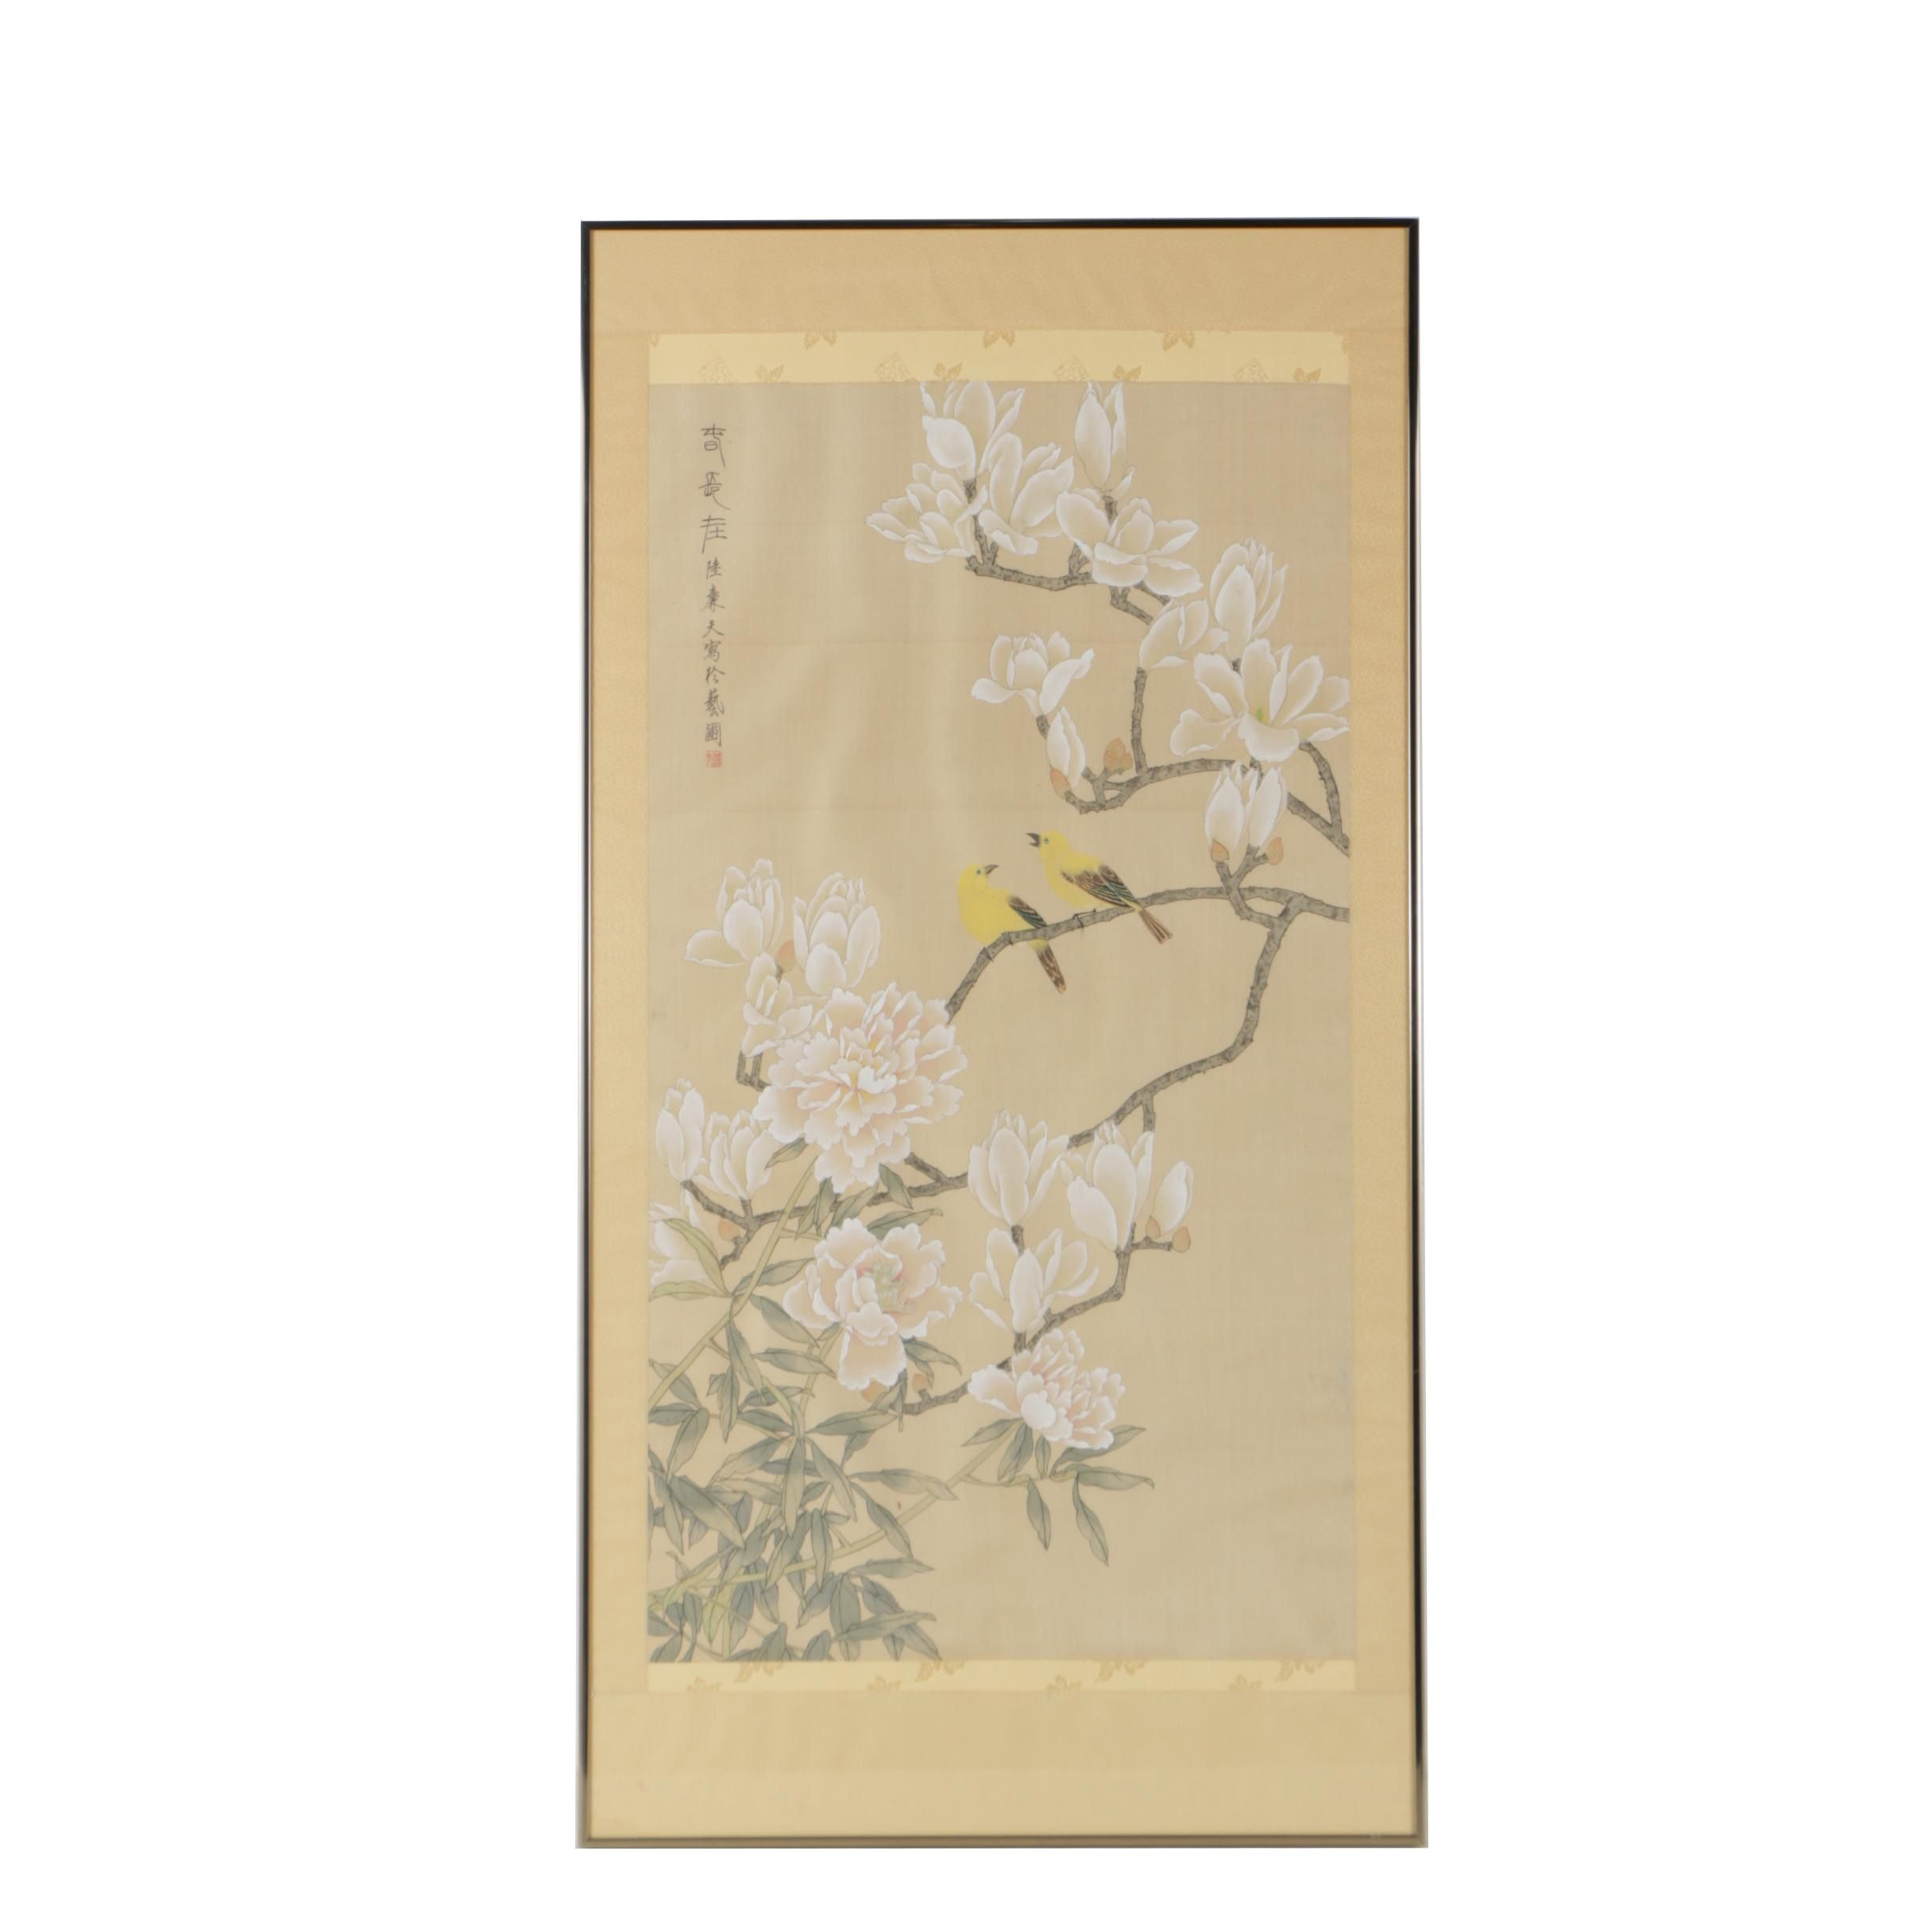 East Asian Watercolor Painting on Silk